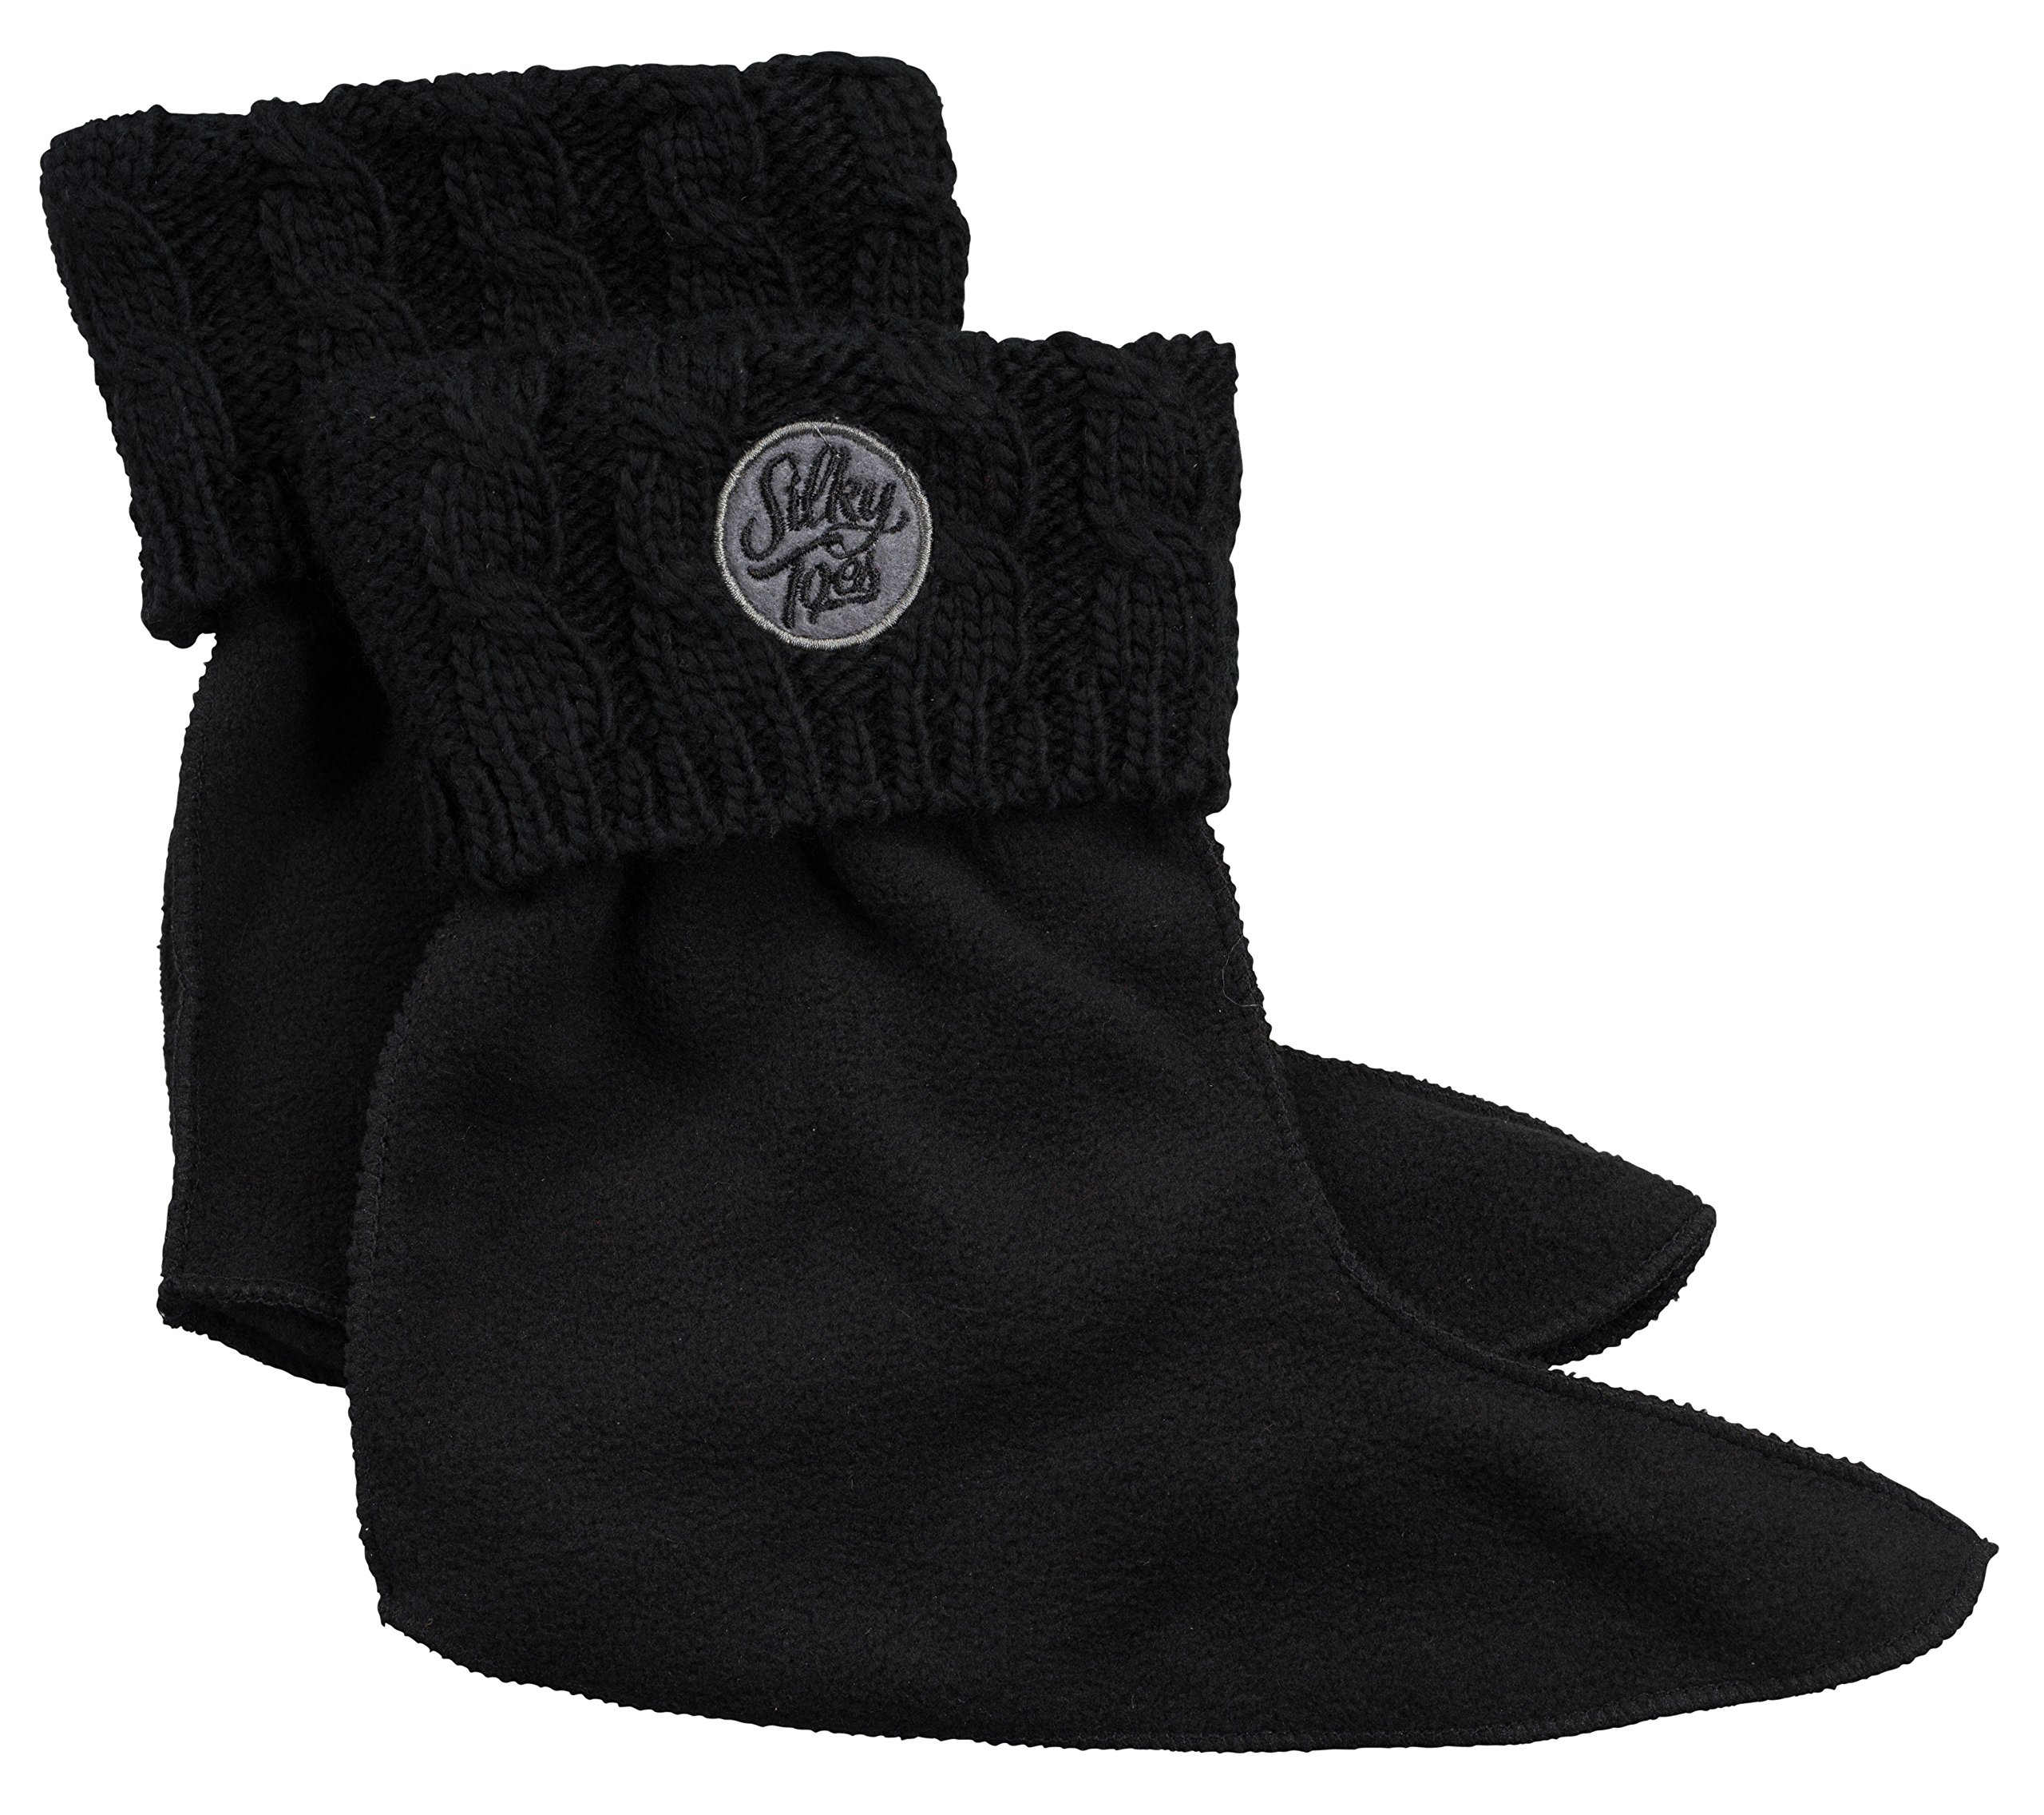 Kids Warm Cozy Fleece Lined Boot Liners With Cable Knit Cuff (Medium, Black)